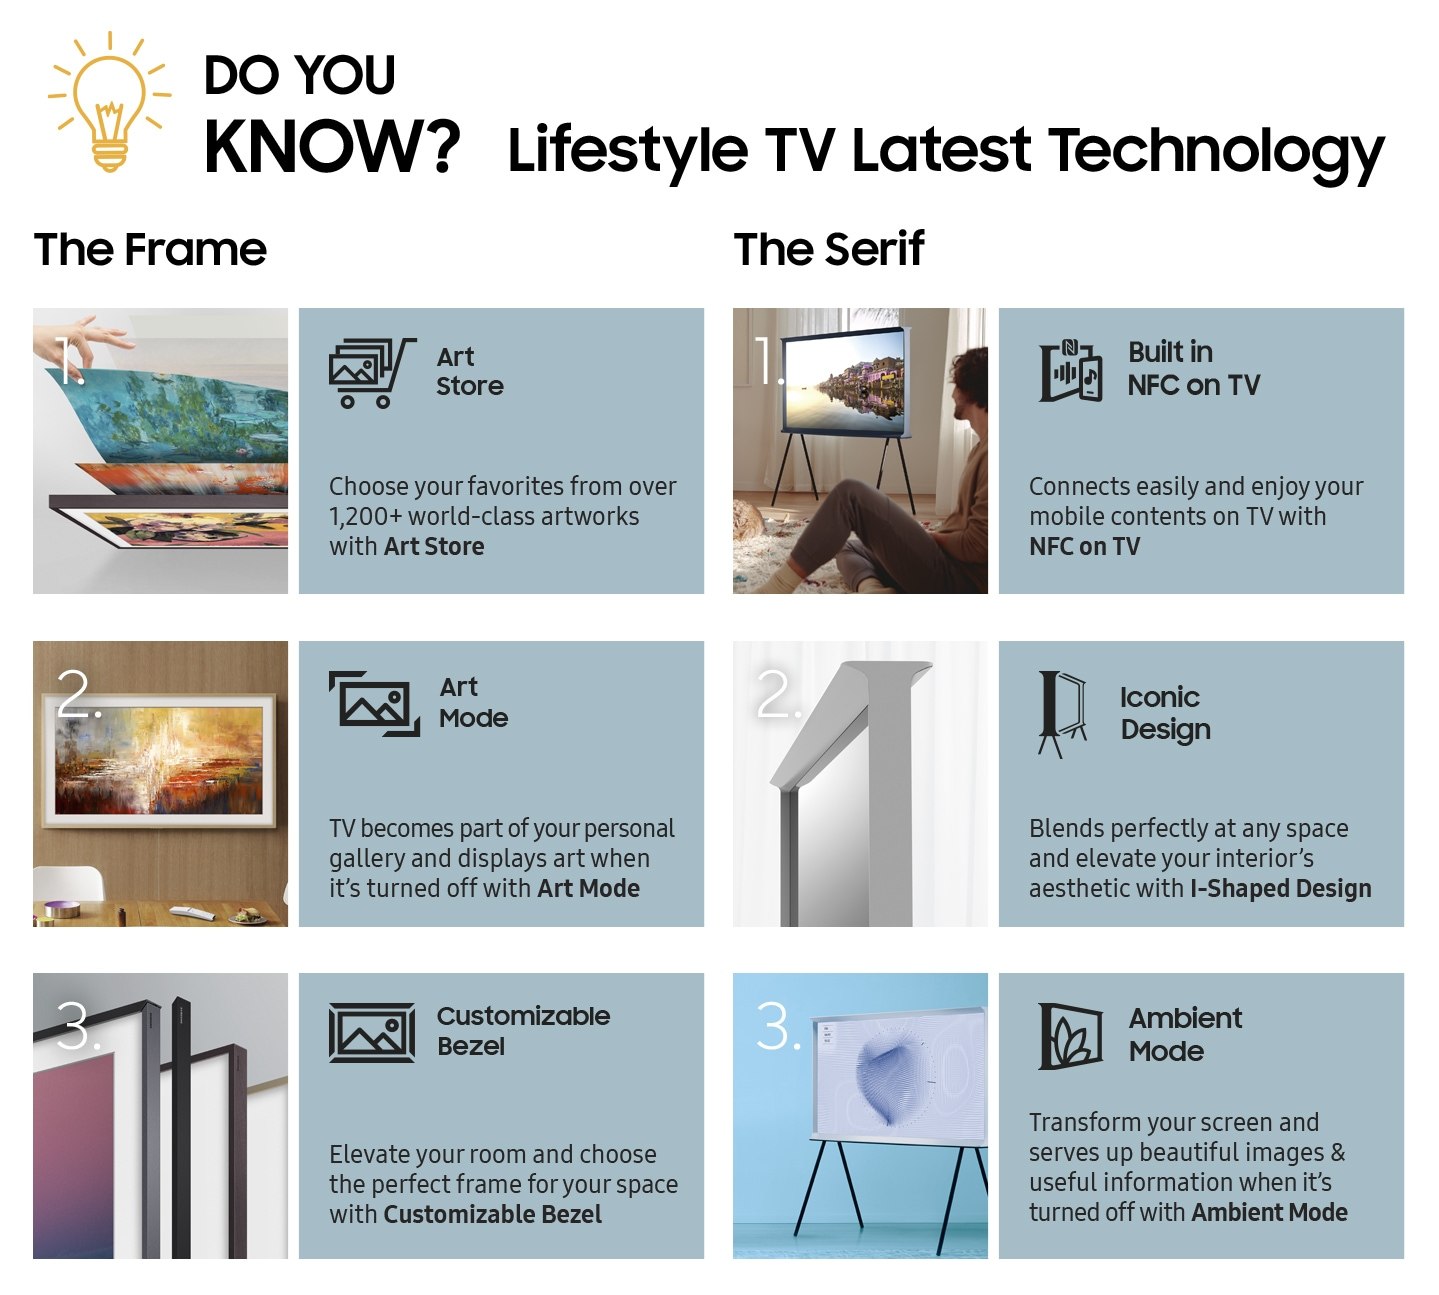 Do you know? Lifestyle TV Latest Technology